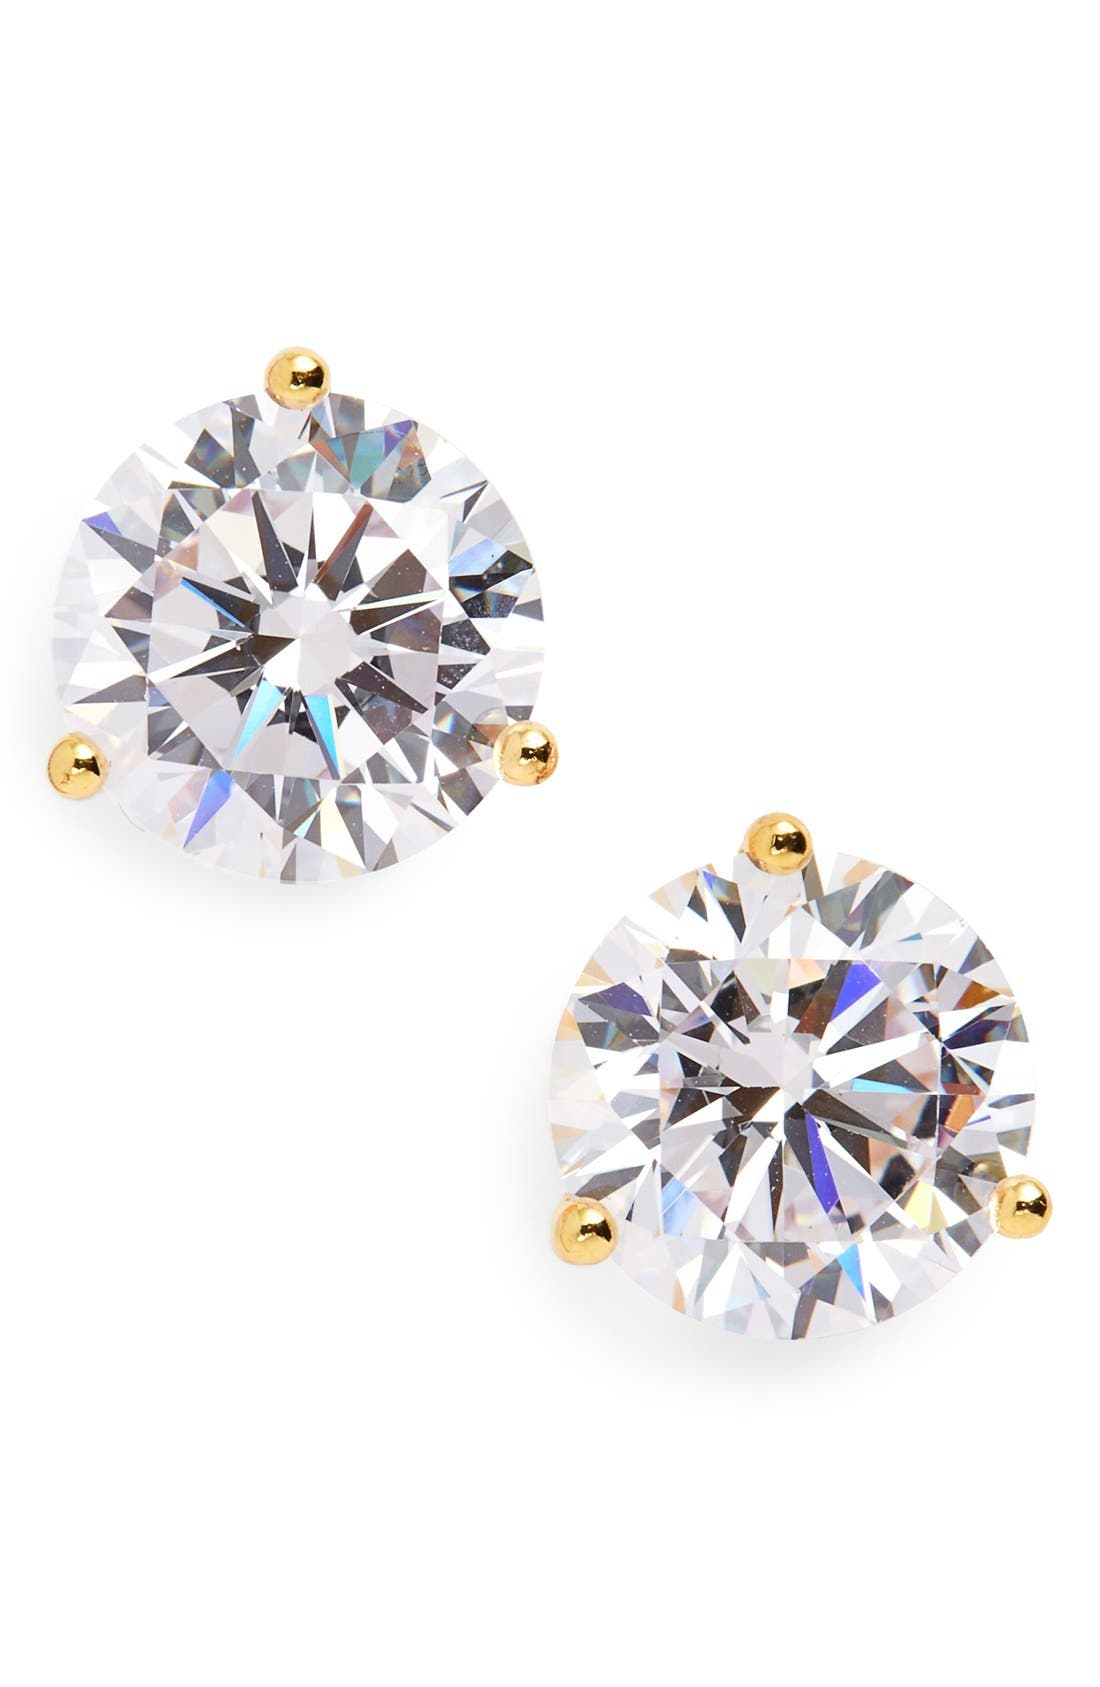 Cubic Zirconia Earrings,                             Main thumbnail 1, color,                             Clear Cz/ Gold Vermeil